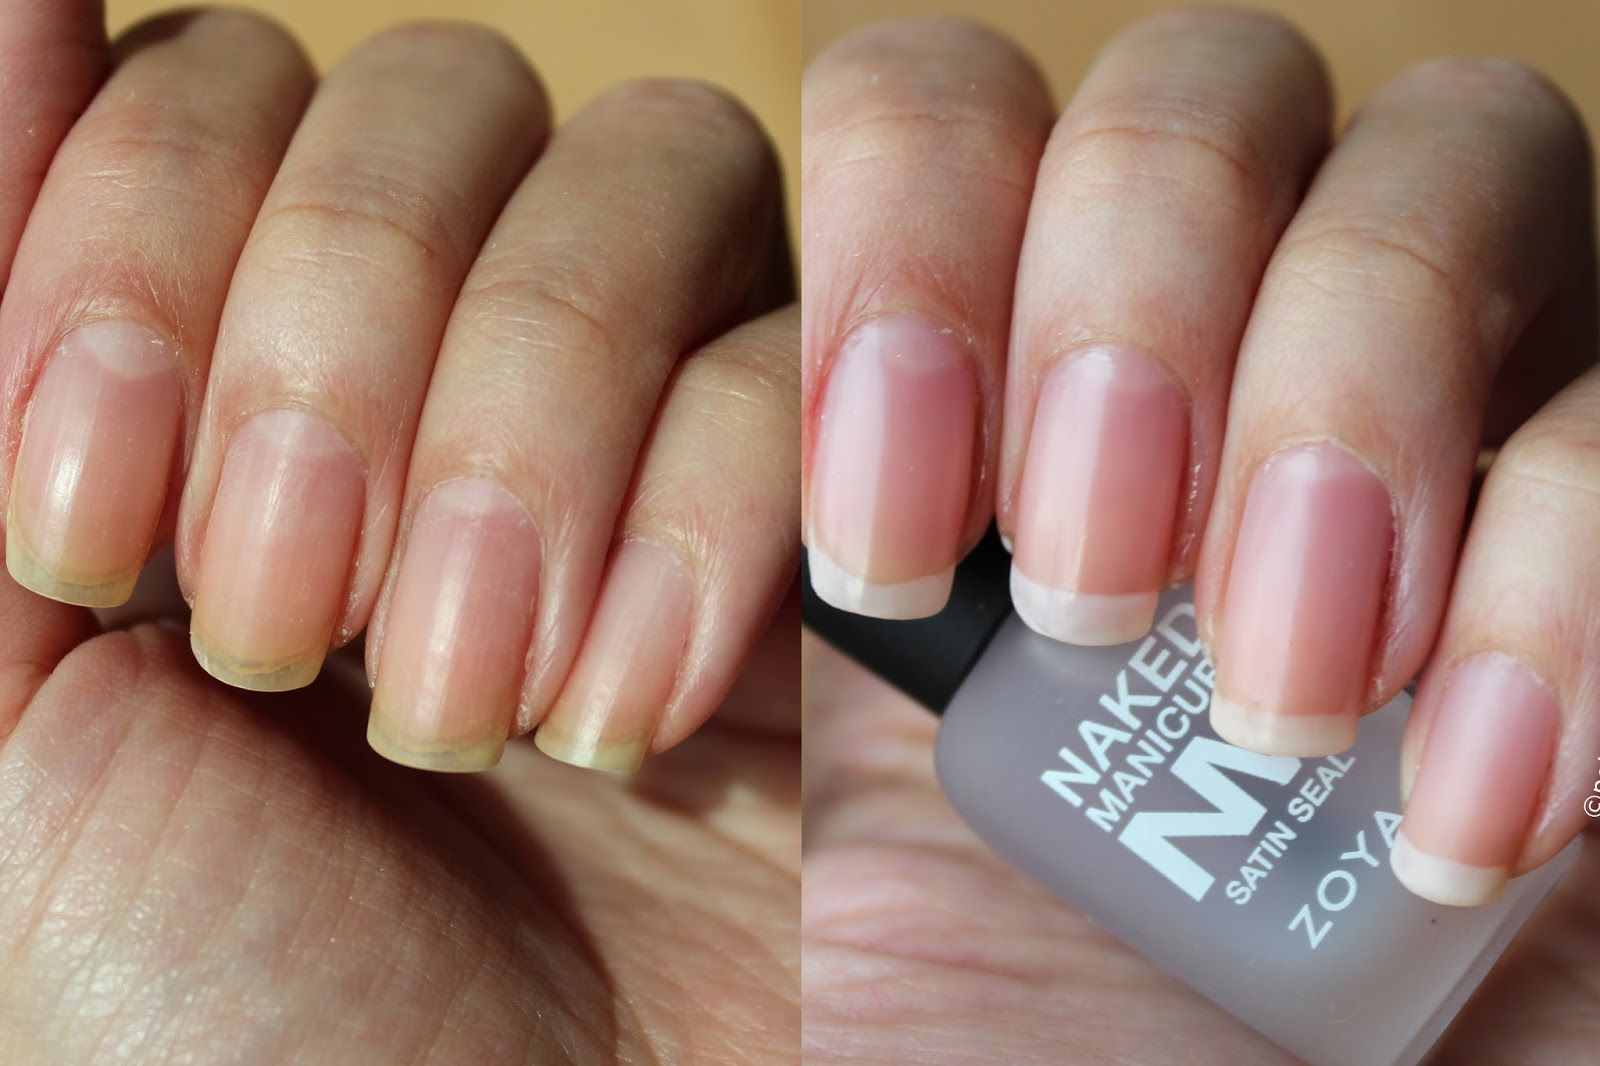 Polished Polyglot Zoya NAKED MANICURE No Polish